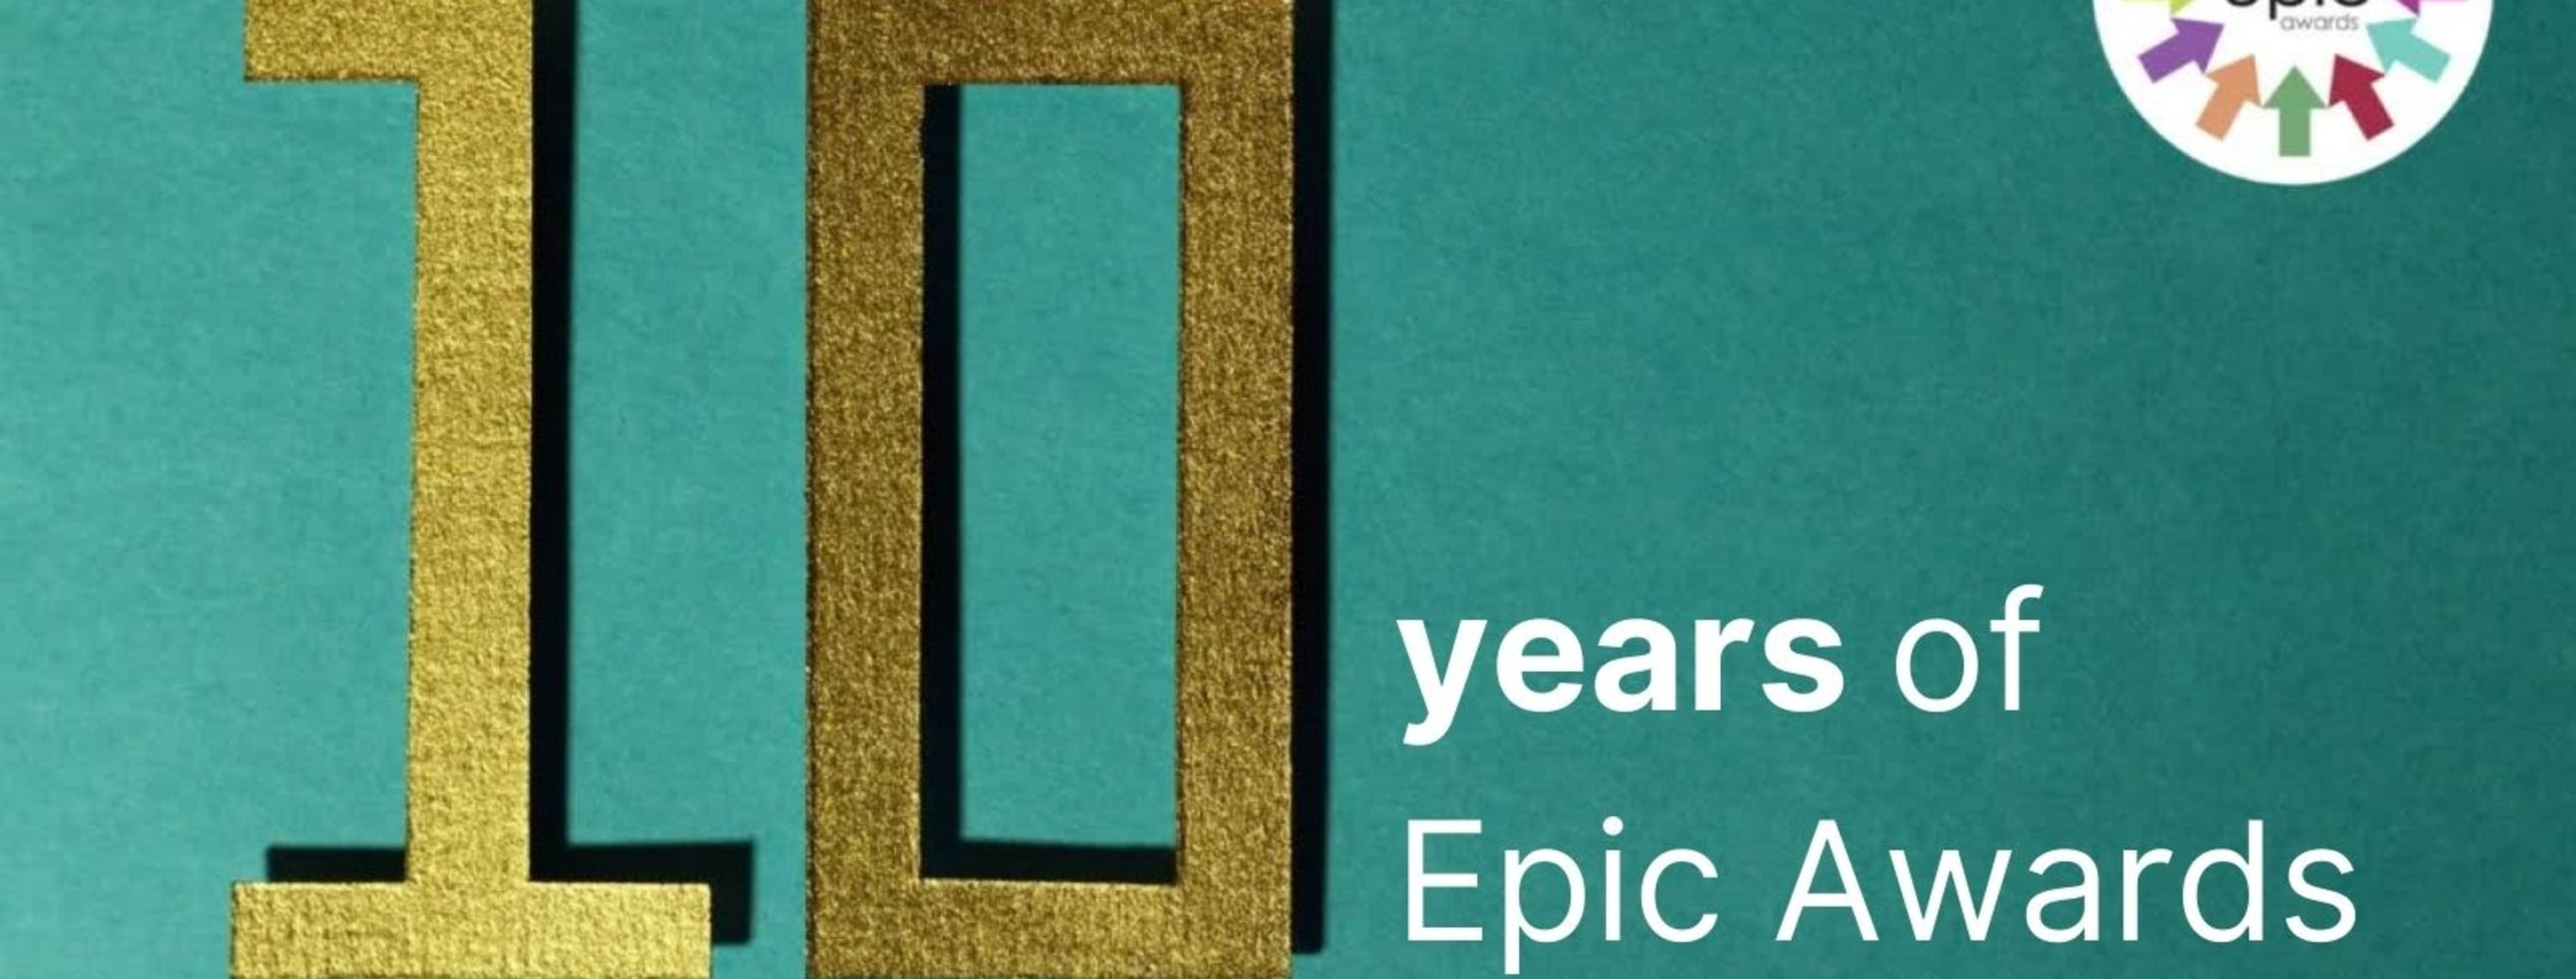 Epic Awards 2020 celebration